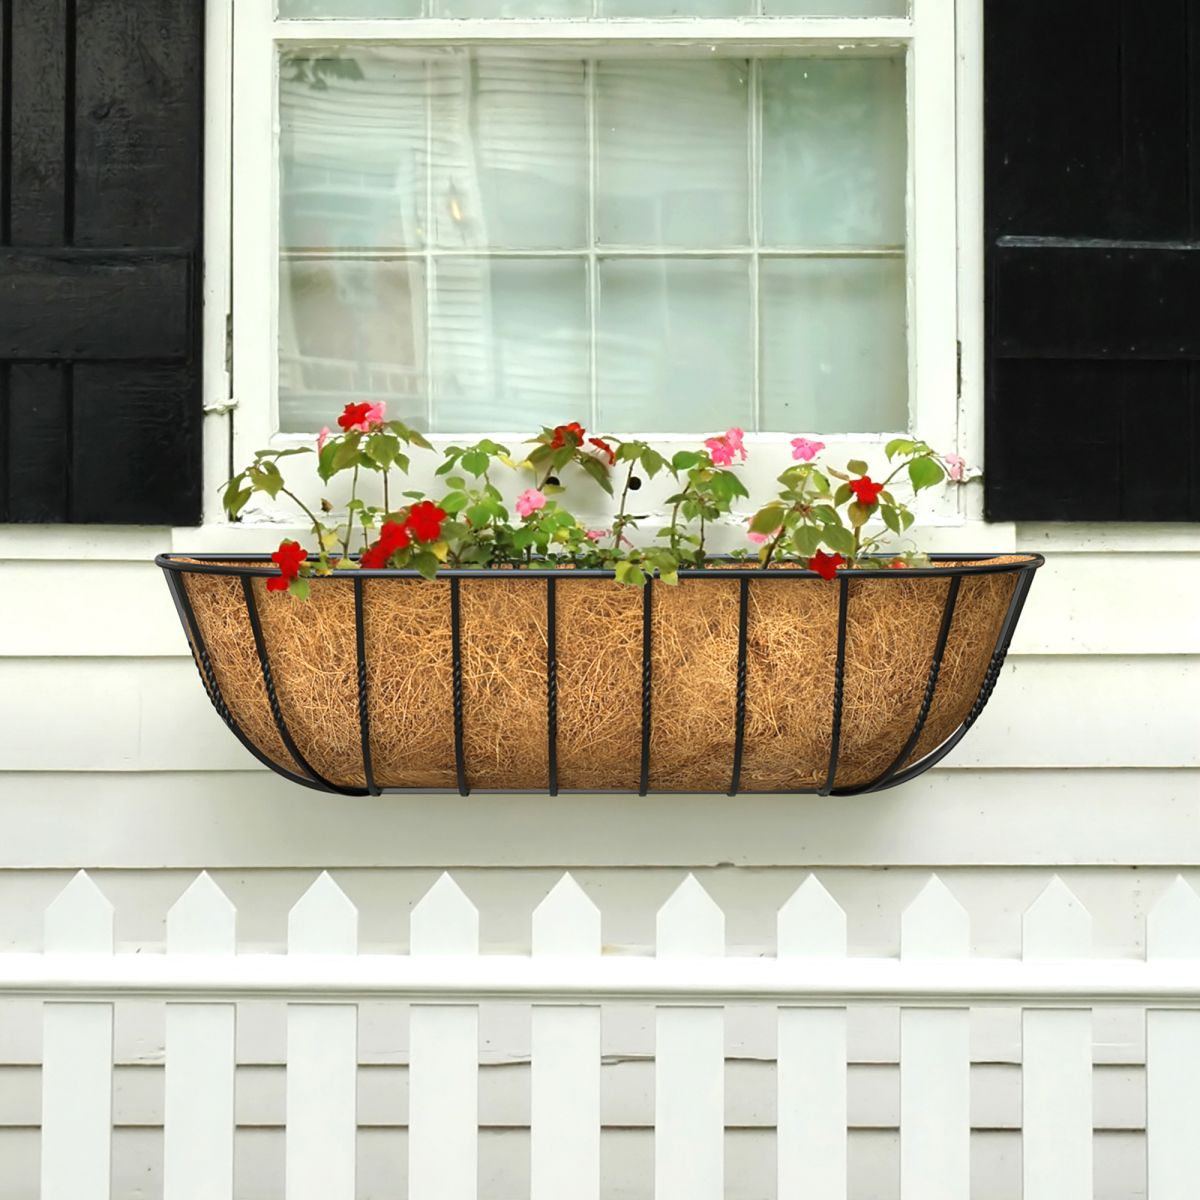 15 window box ideas – perfect planting tips for floral interest in all seasons